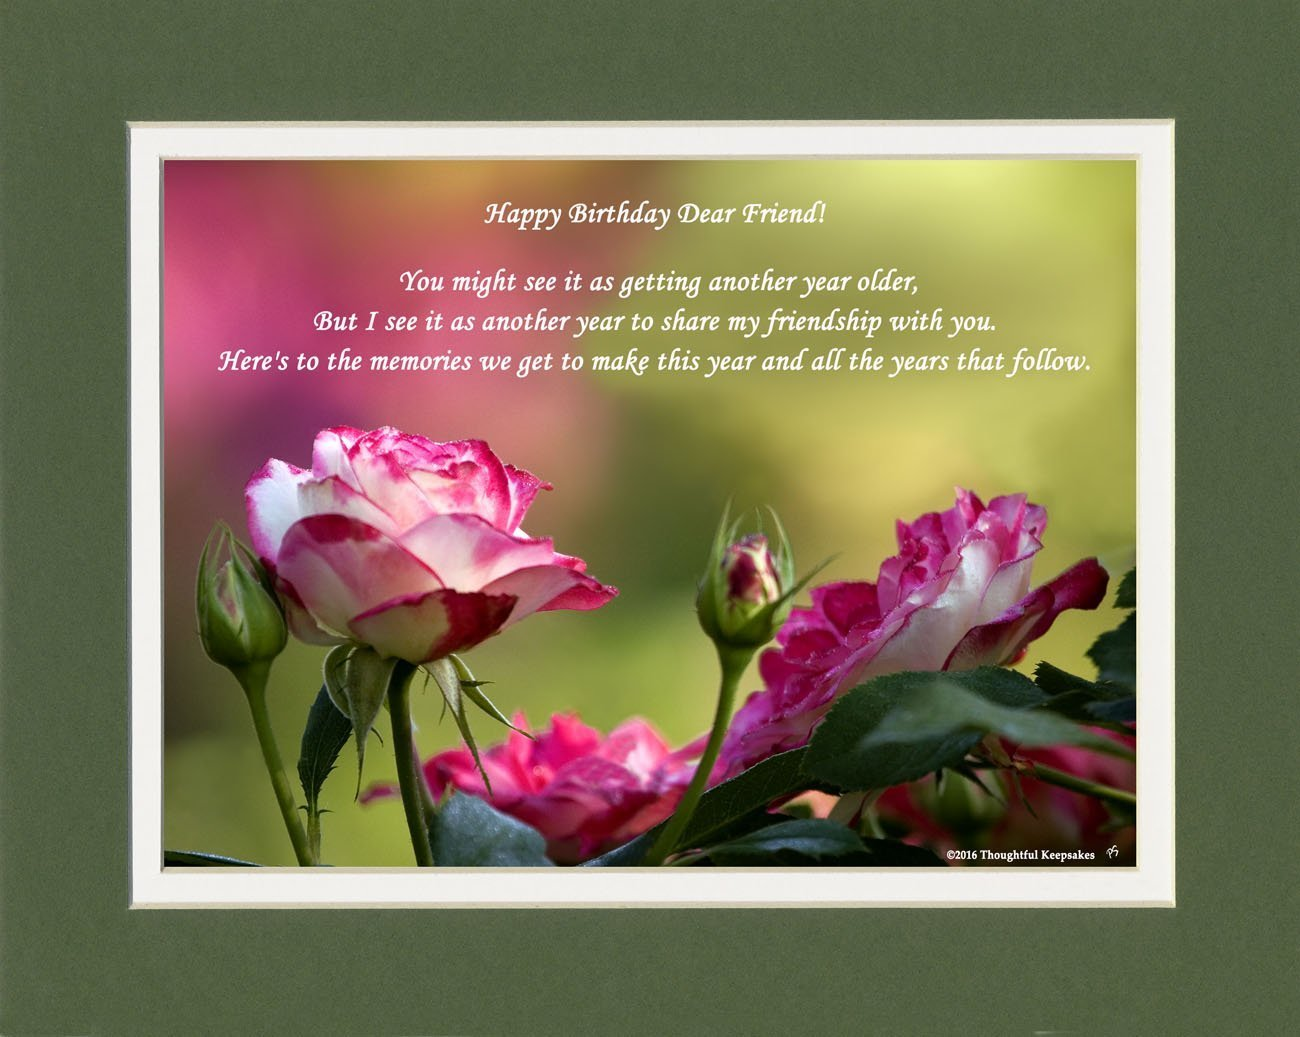 Friend Birthday Gift Roses Photo WithHappy Dear Poem 8x10